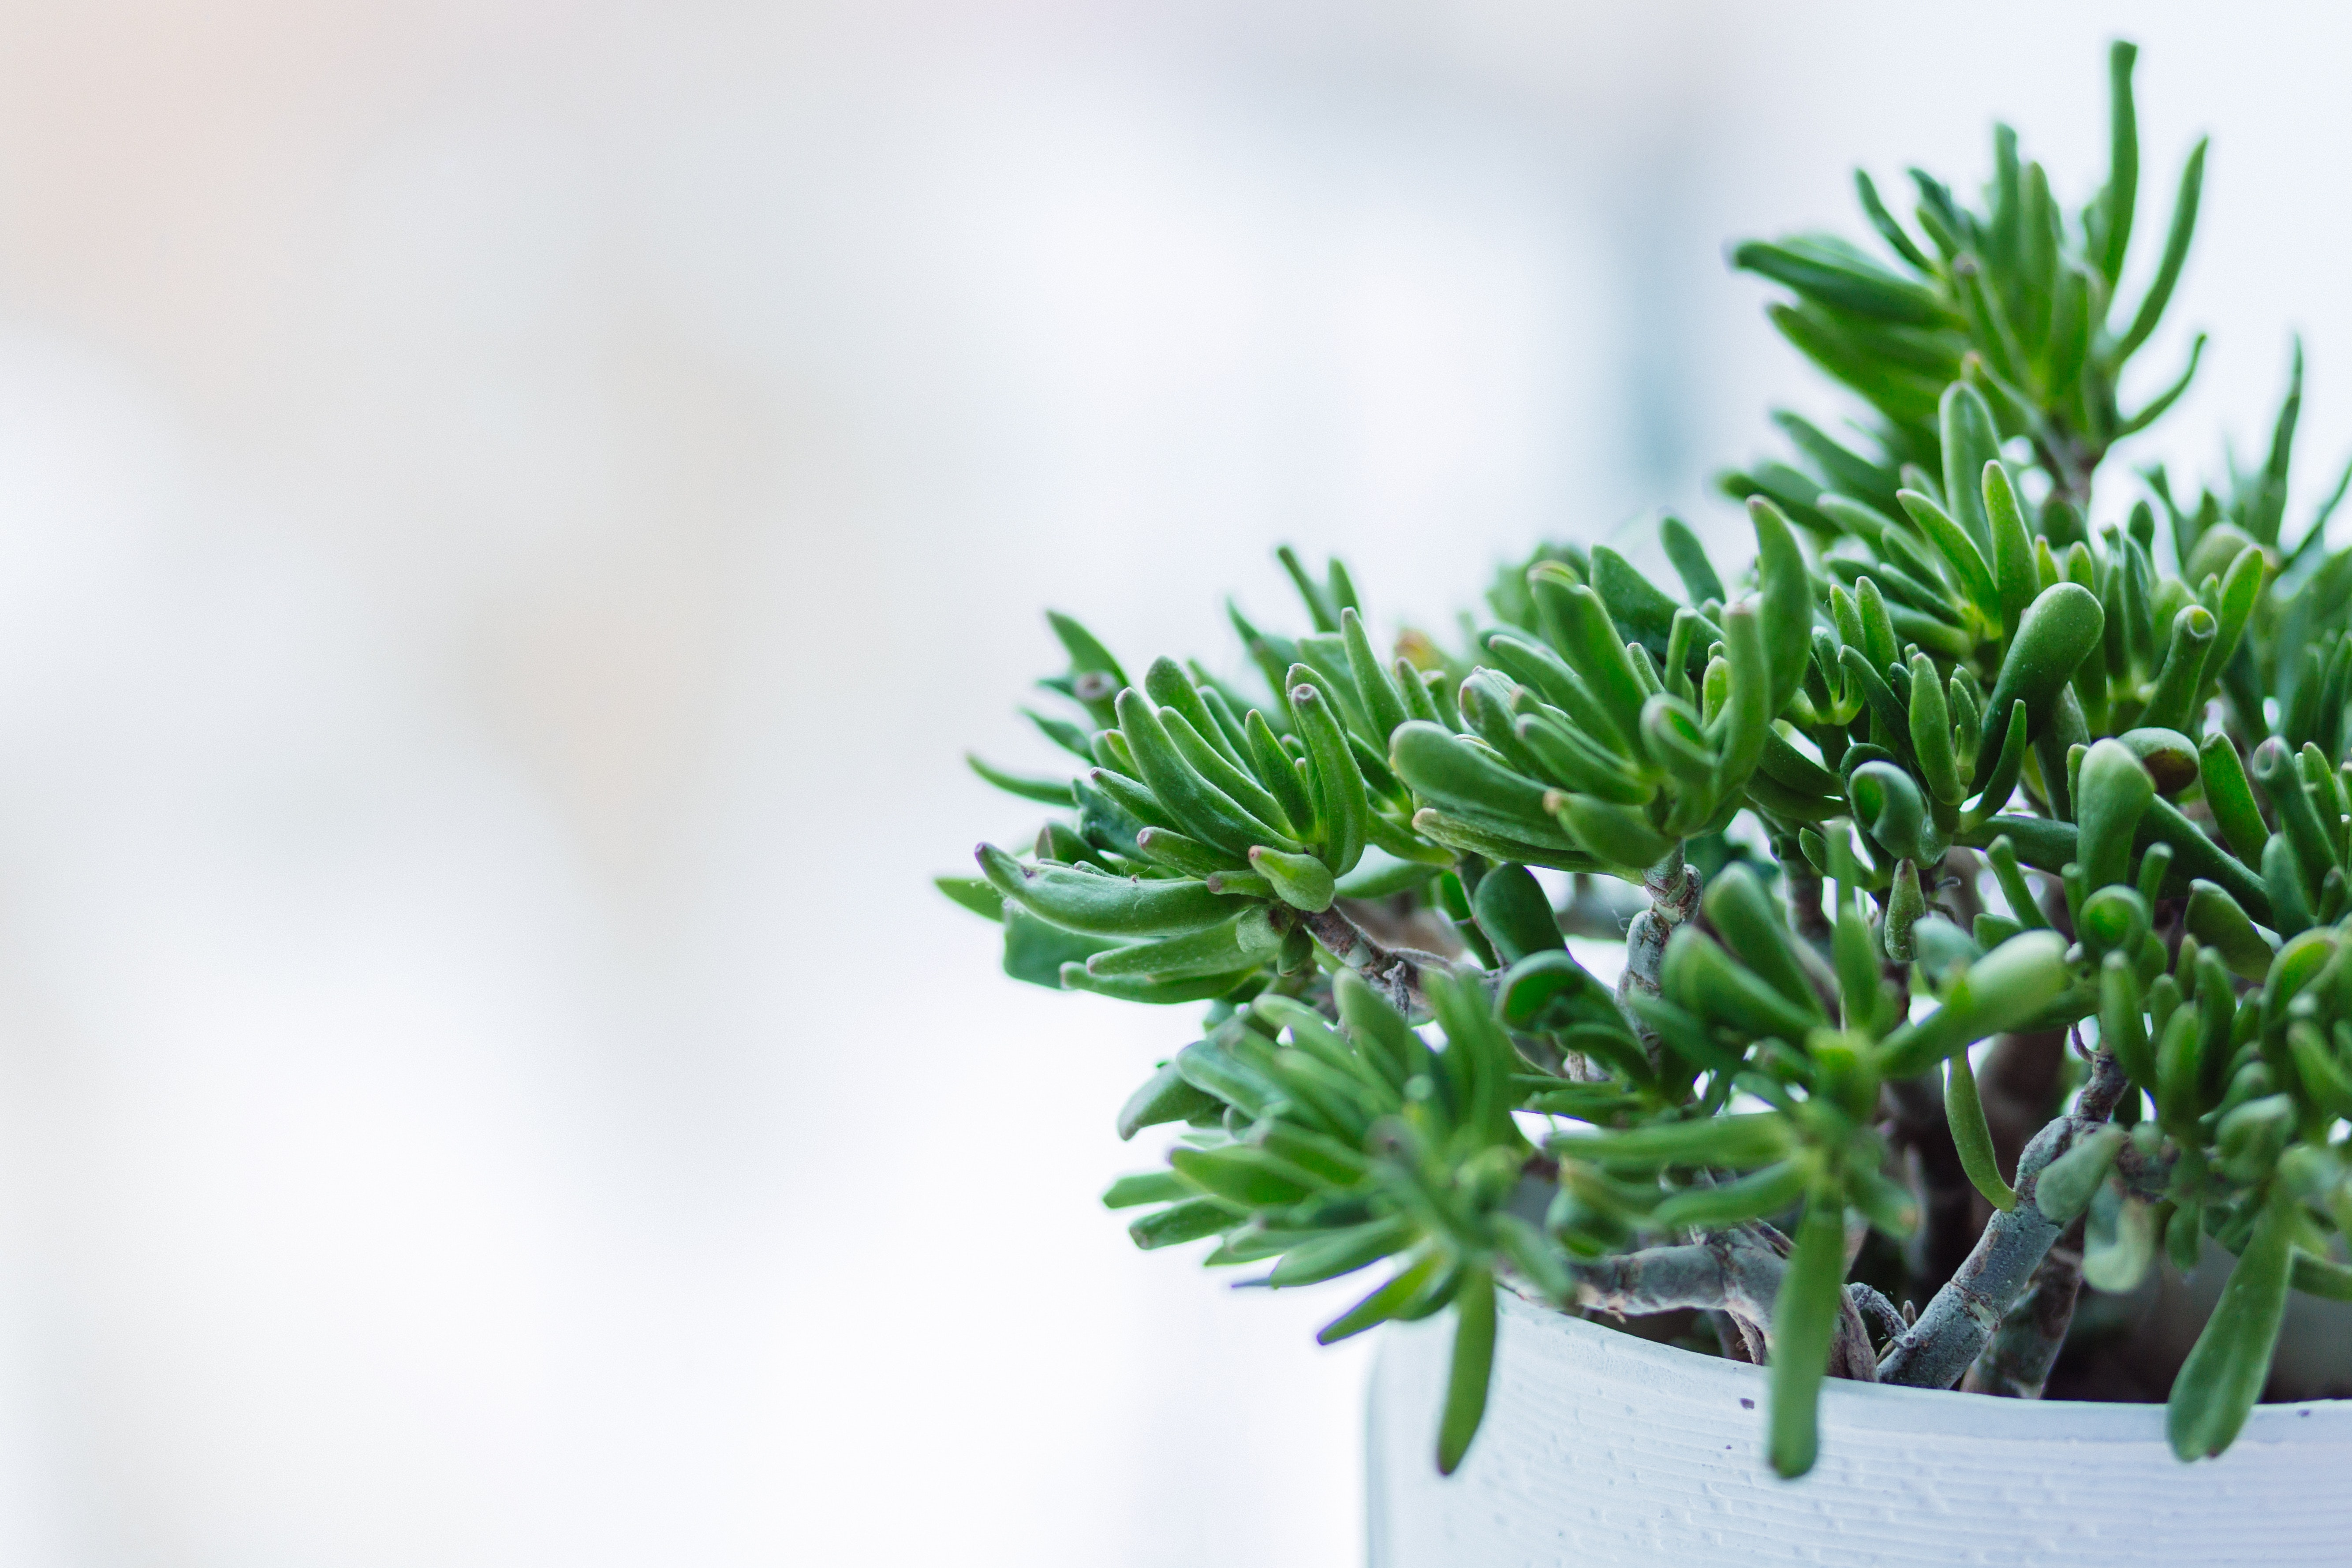 Close-up of fresh green plant against tree photo